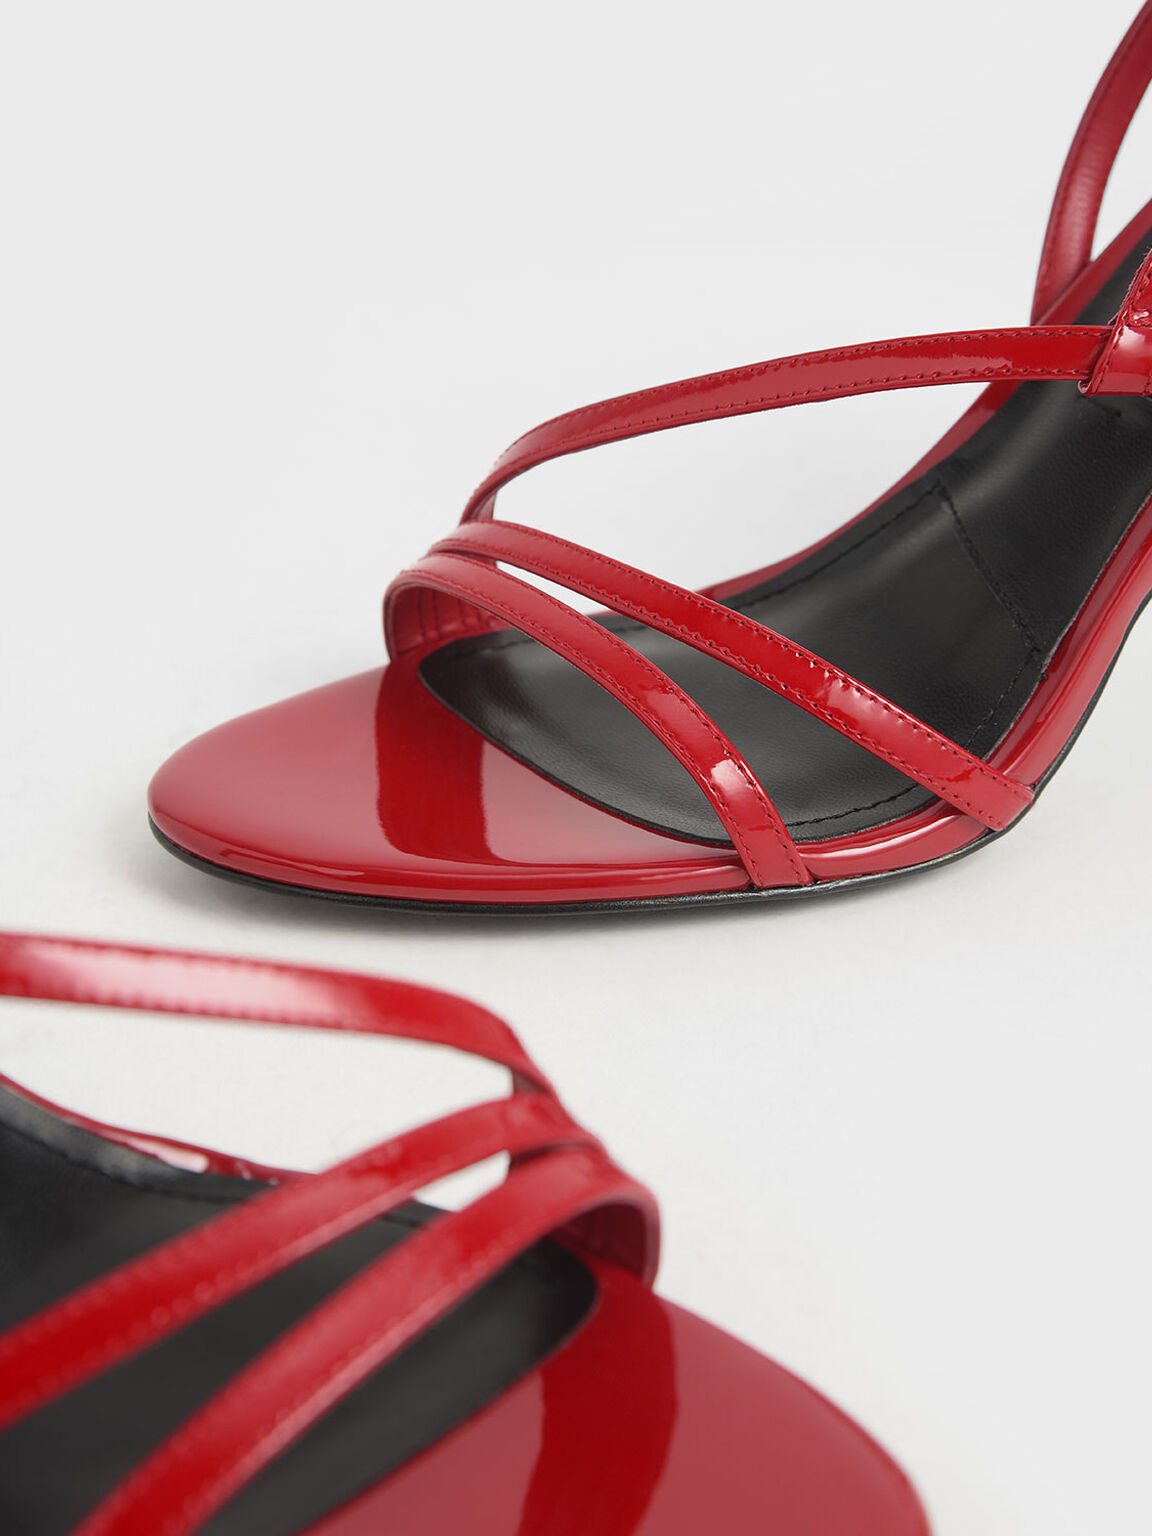 Patent Leather Strappy Heeled Sandals, Red, hi-res